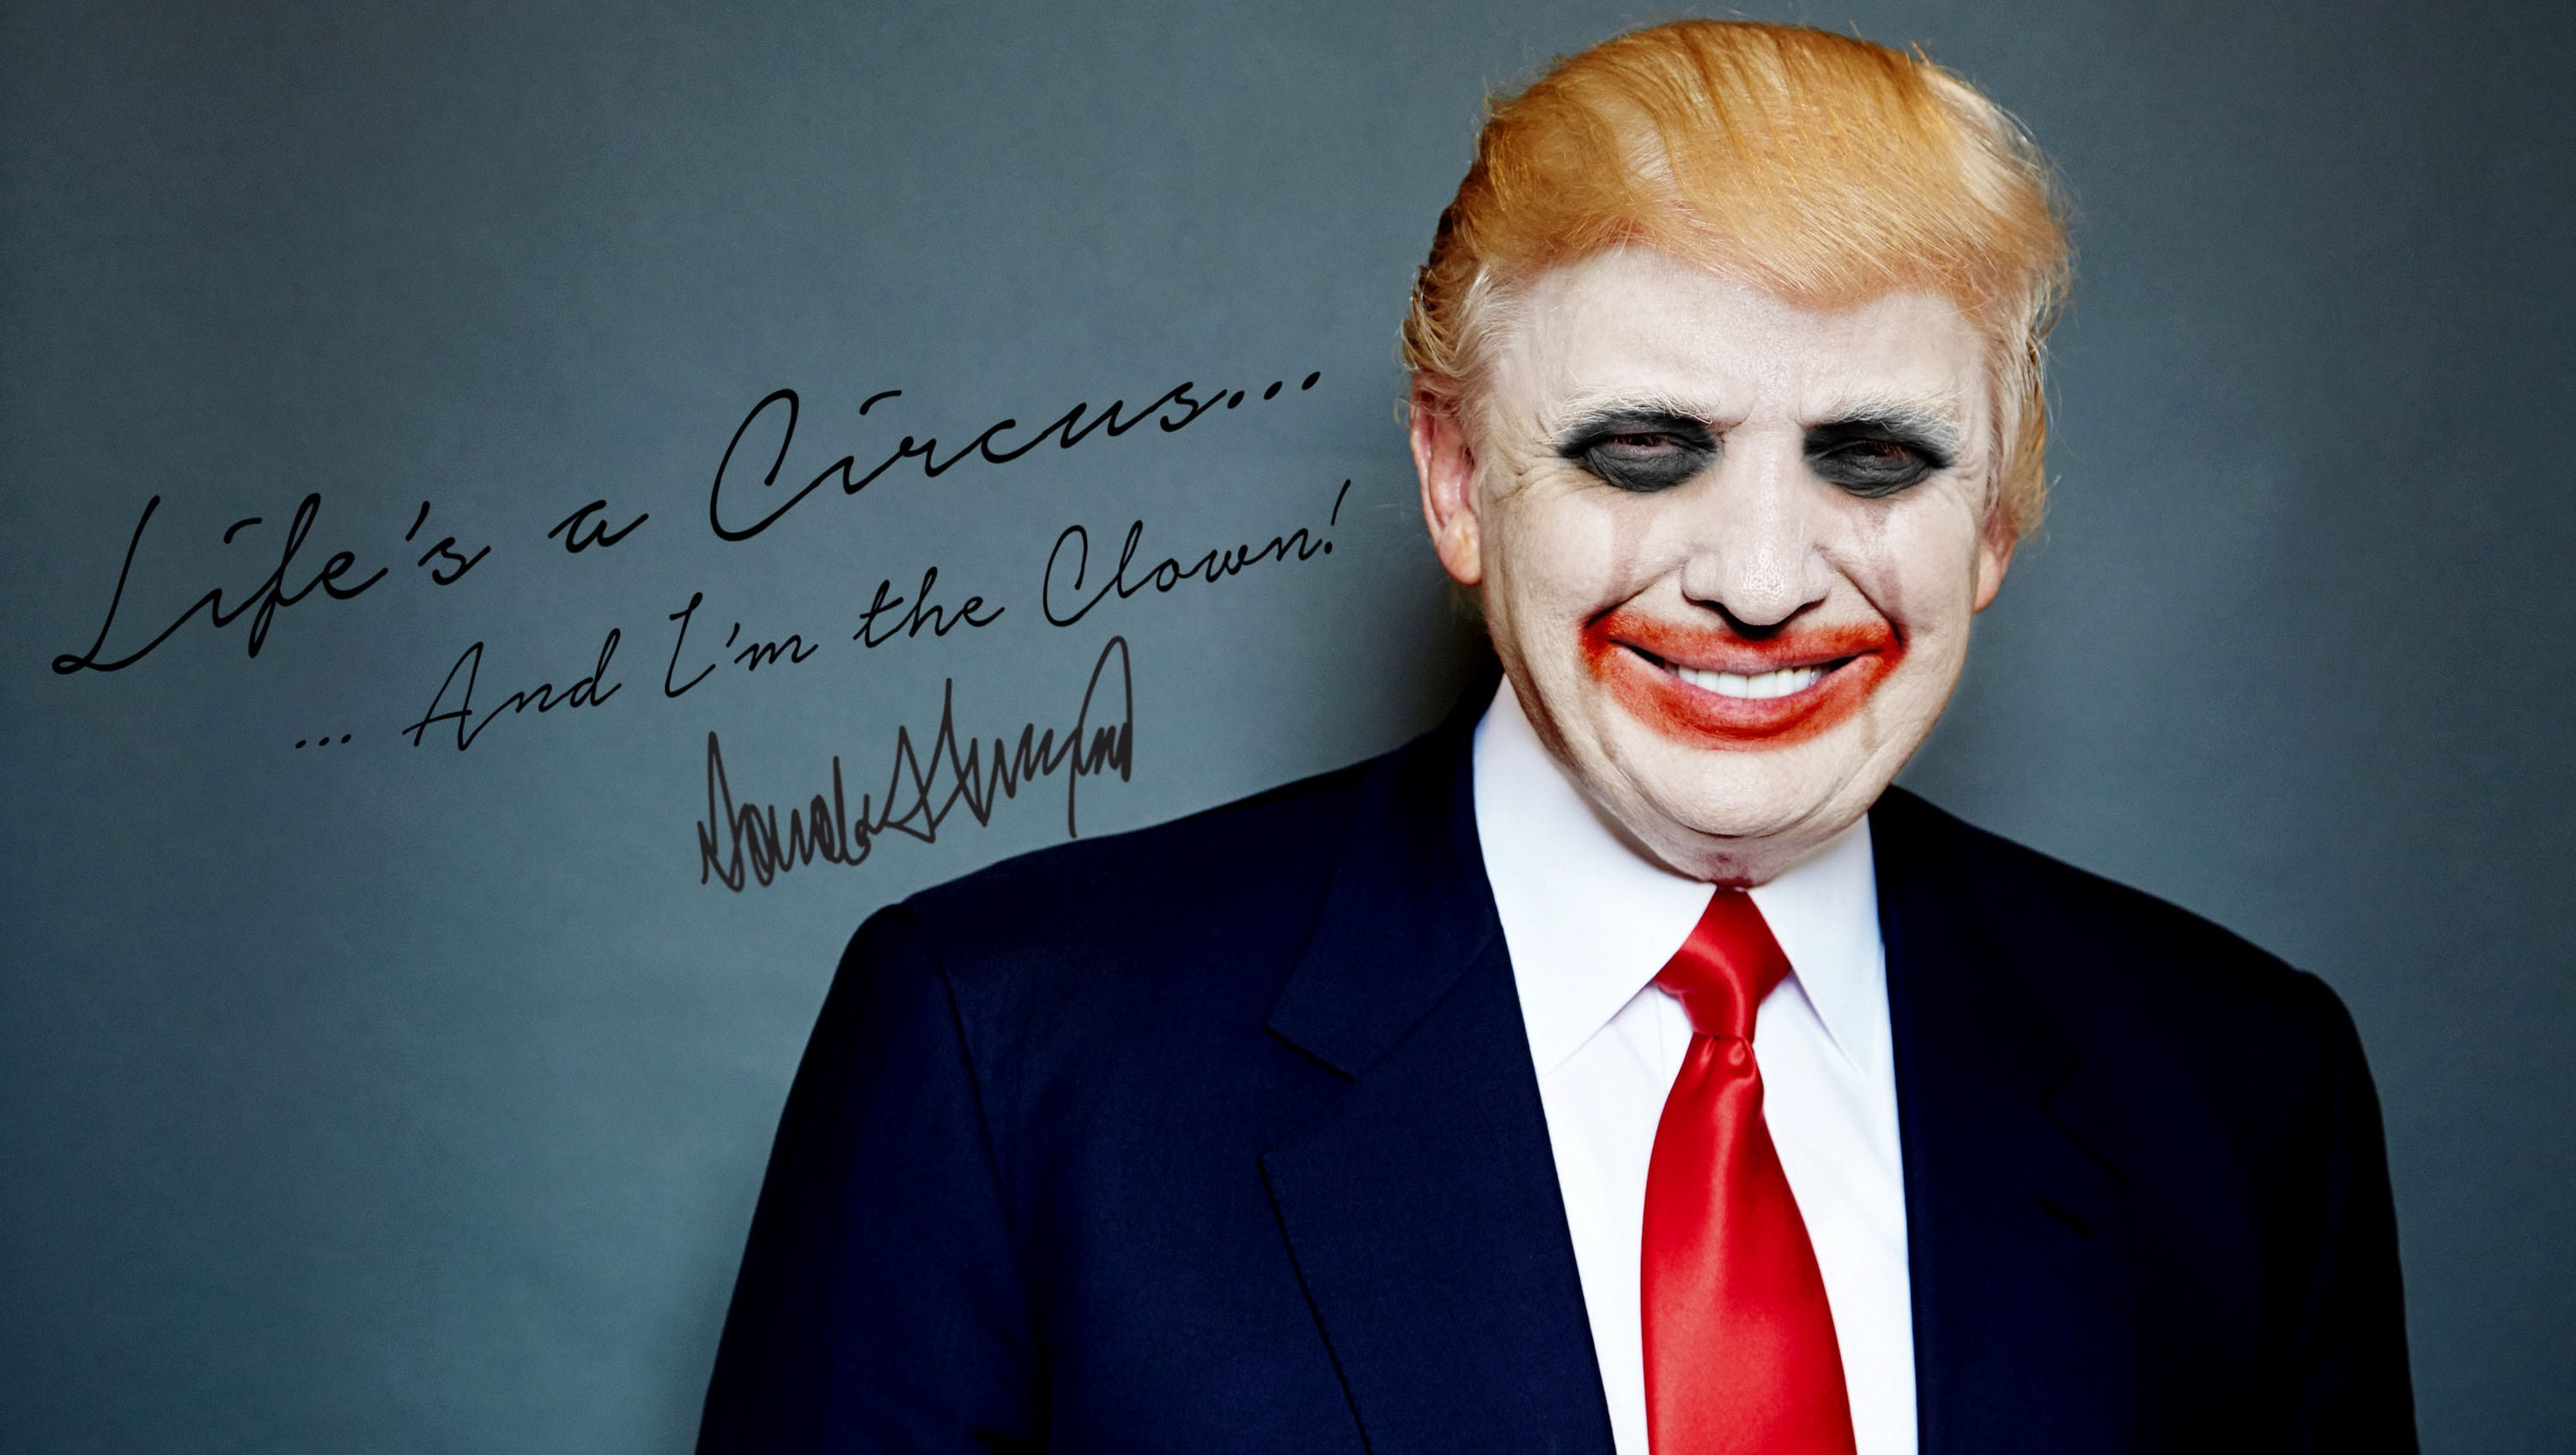 becoming an actor a clown the president But, this being hollywood, the actor behind all that scary clown makeup is actually really gorgeous and far more famous than you might have originally thought.